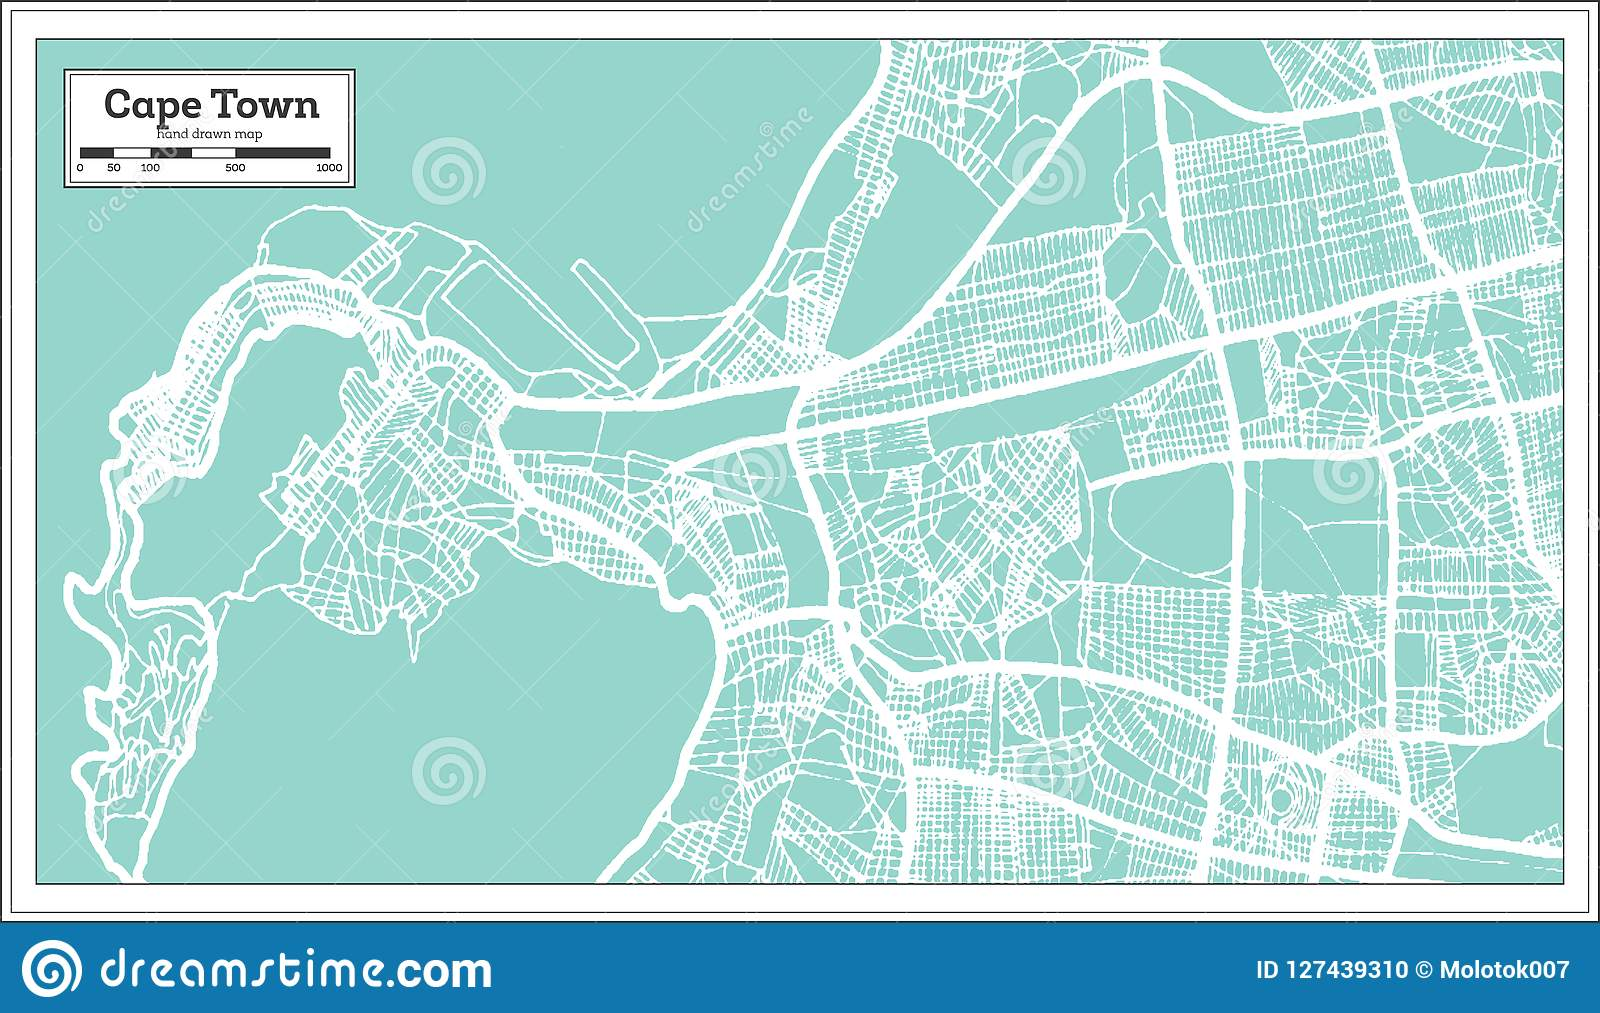 Cape Town South Africa City Map In Retro Style. Outline Map. Stock Cape Town Map on